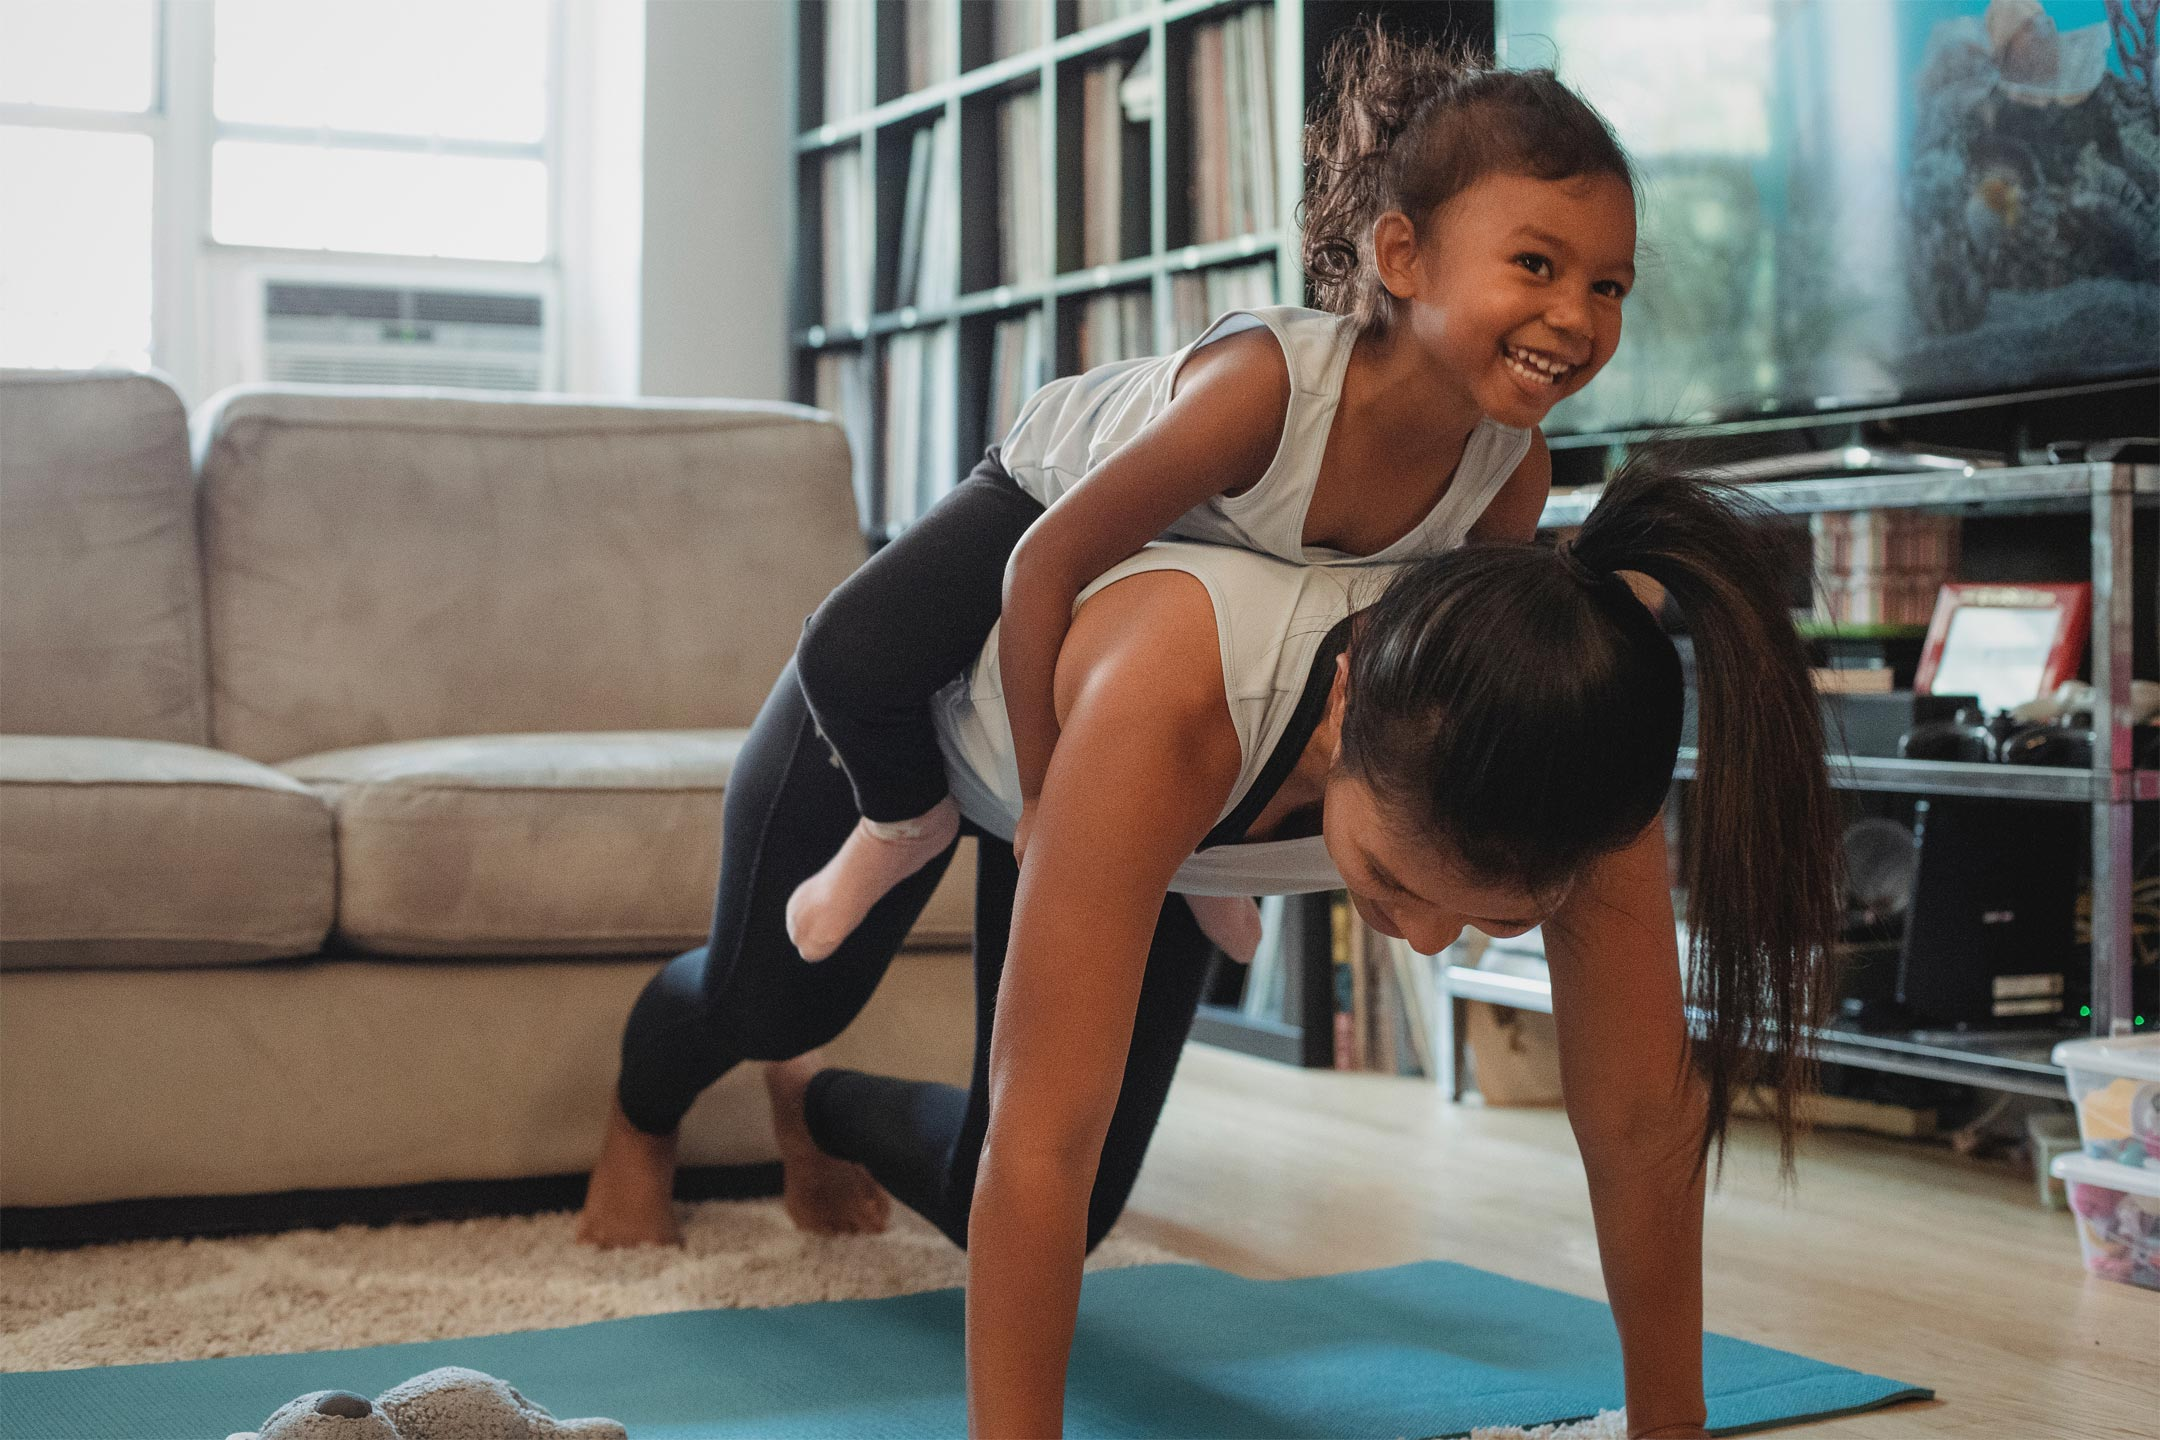 mother-daughter-exercise-at-home2160